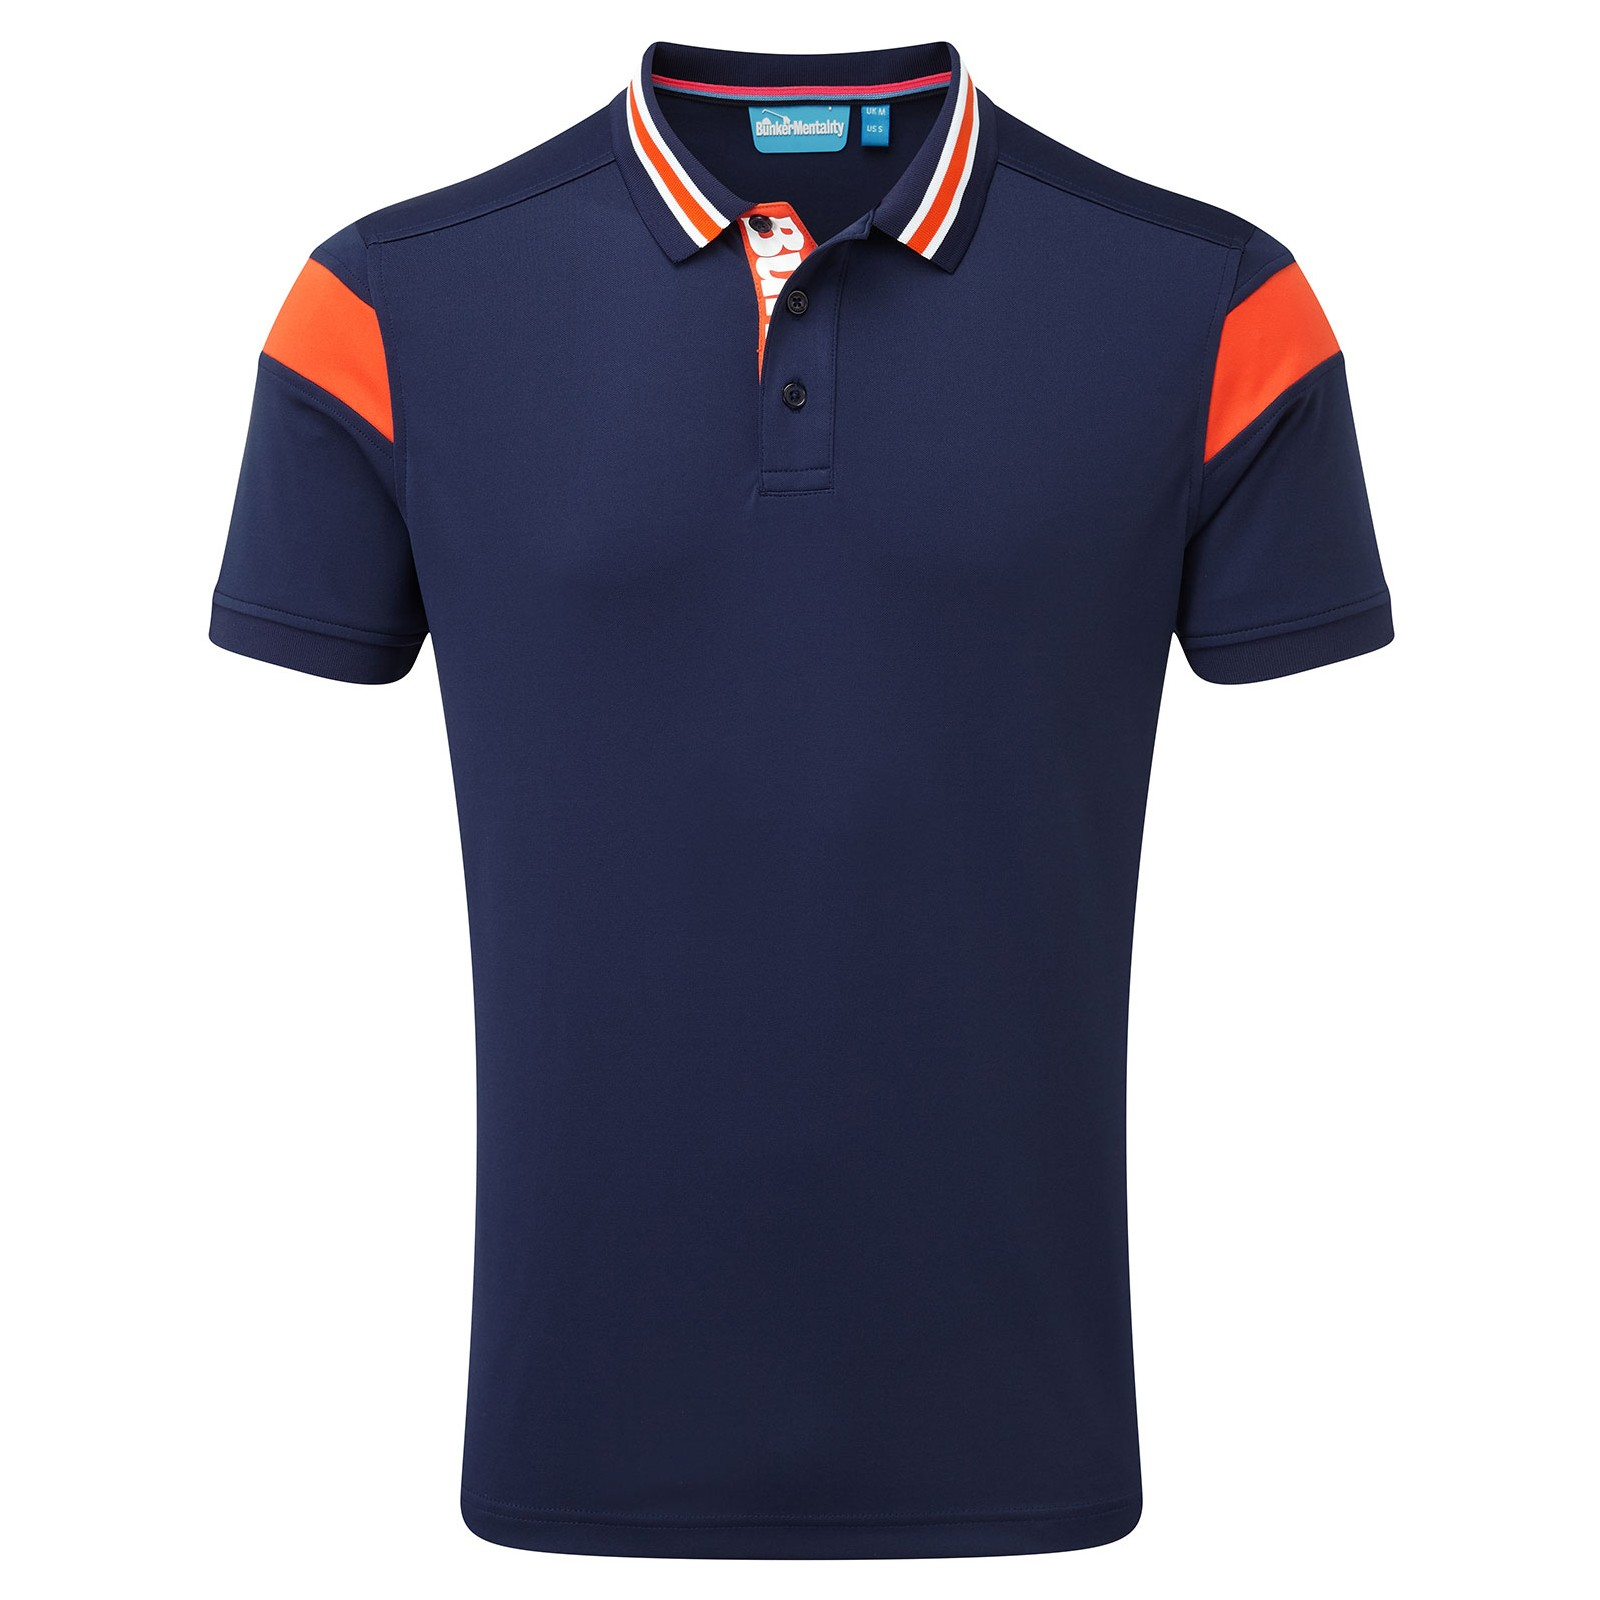 Bunker Mentality Sports Back Polo Shirts